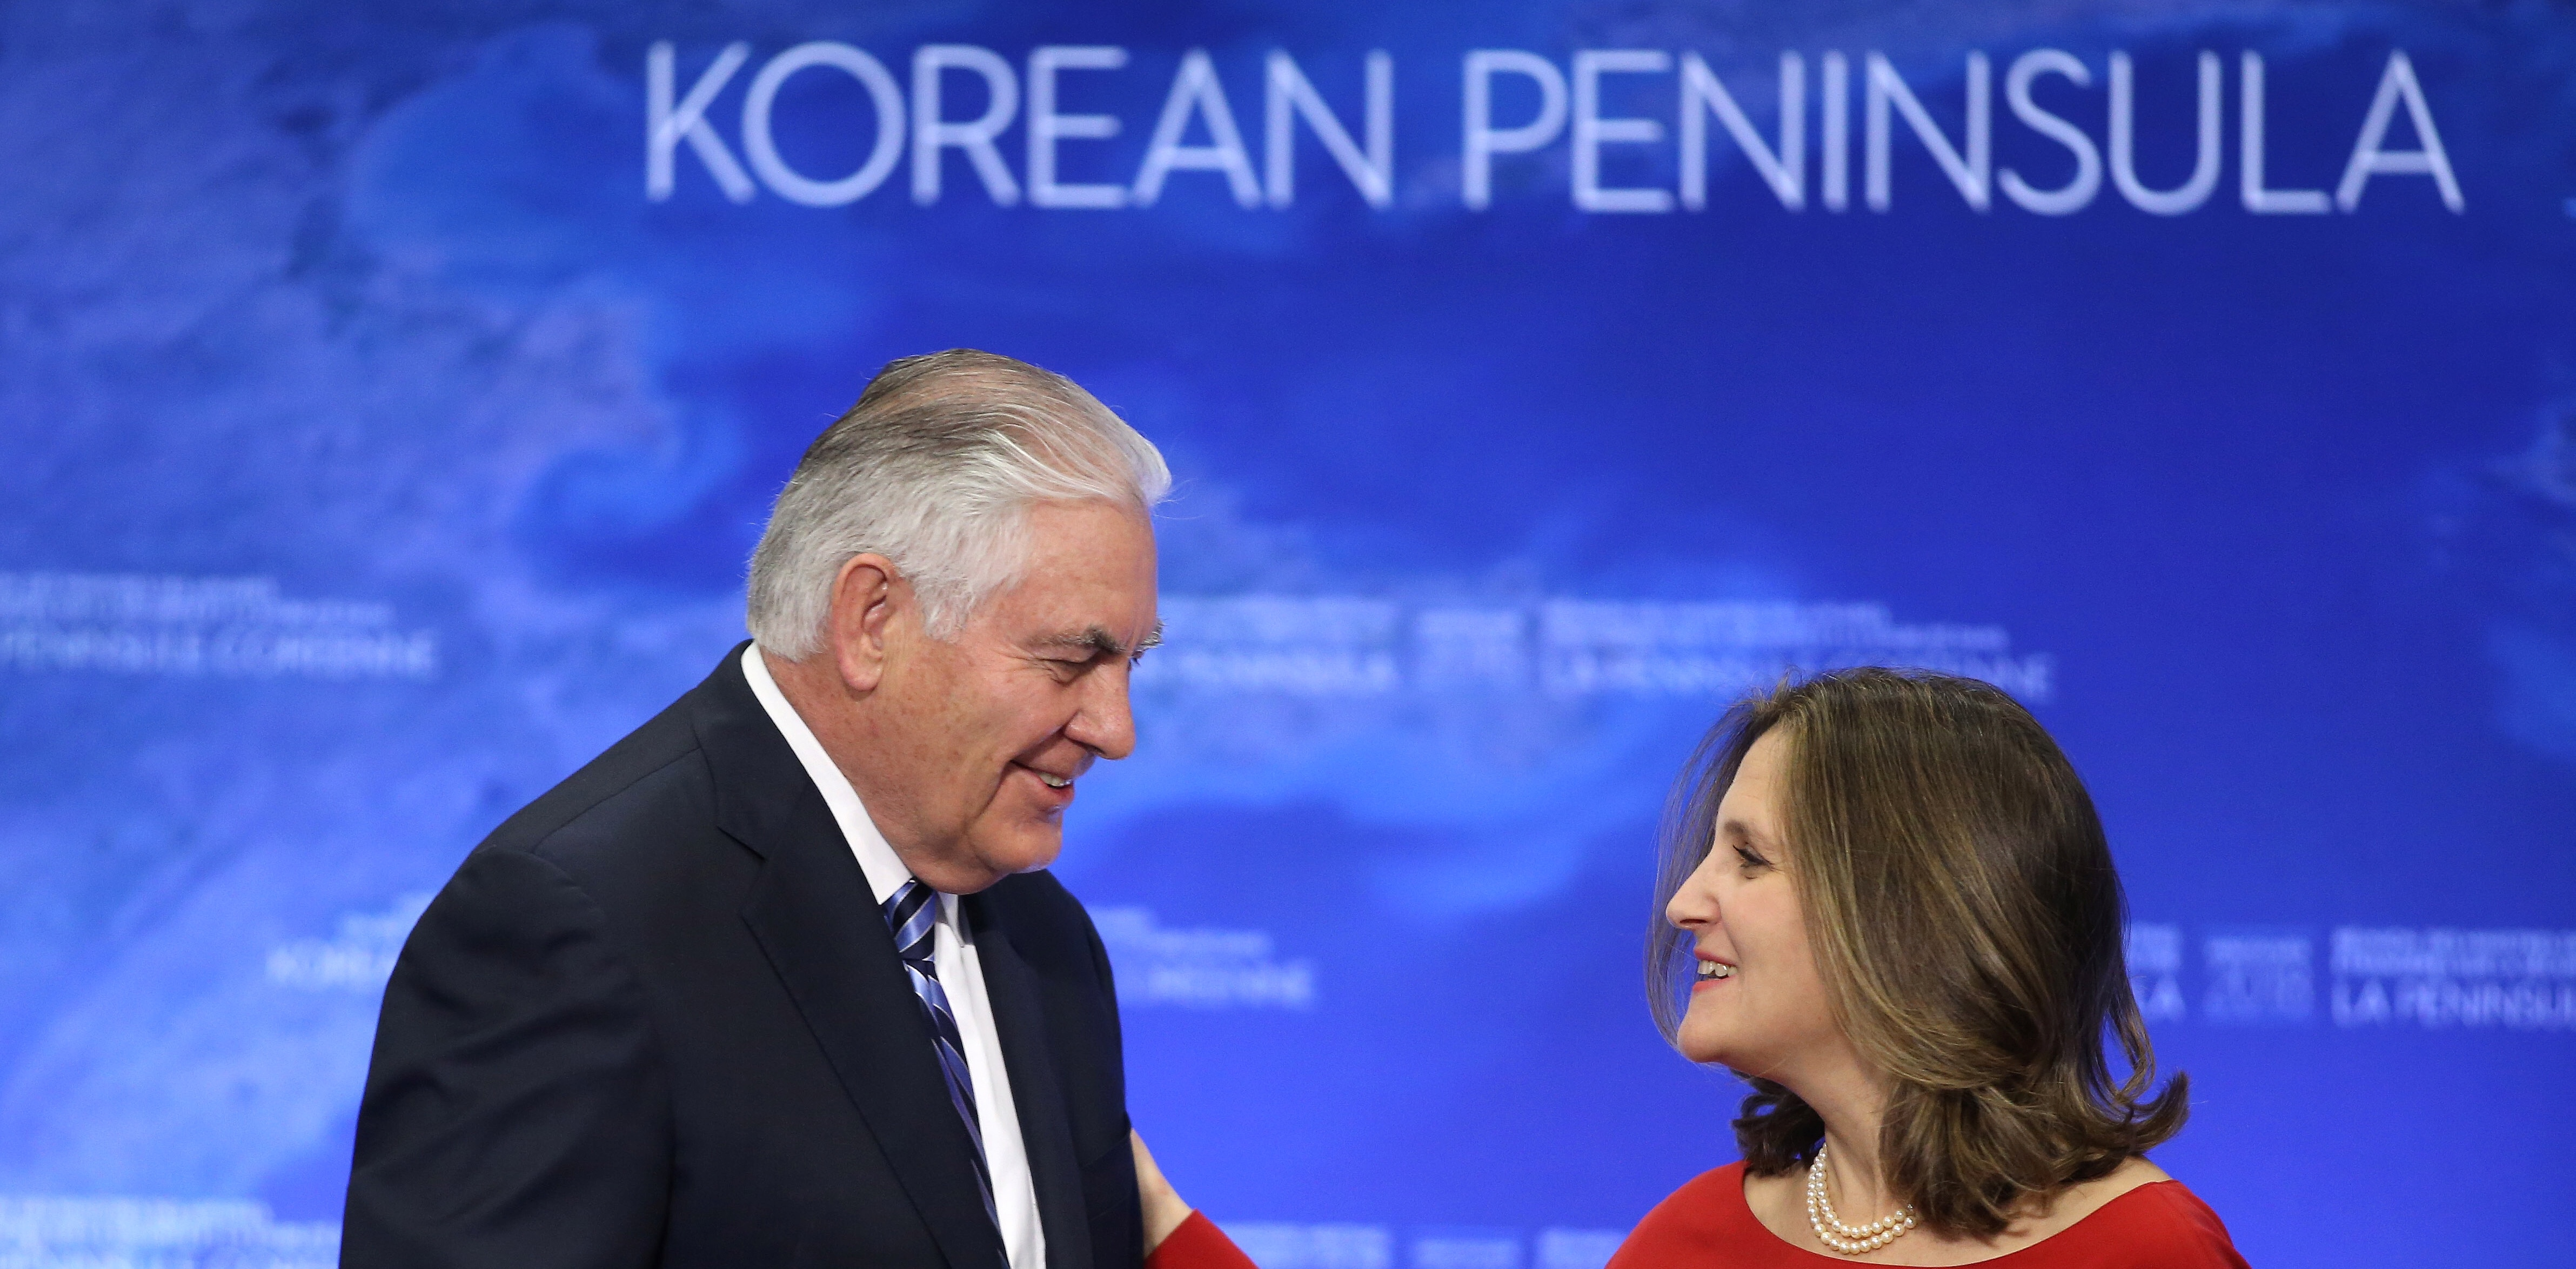 U.S. Secretary of State Rex Tillerson speaks with Canadaís Minister of Foreign Affairs Chrystia Freeland during the Foreign Ministersí Meeting on Security and Stability on the Korean Peninsula in Vancouver, British Columbia, Canada, January 16, 2018. REUTERS/Ben Nelms - RC162D92FA70